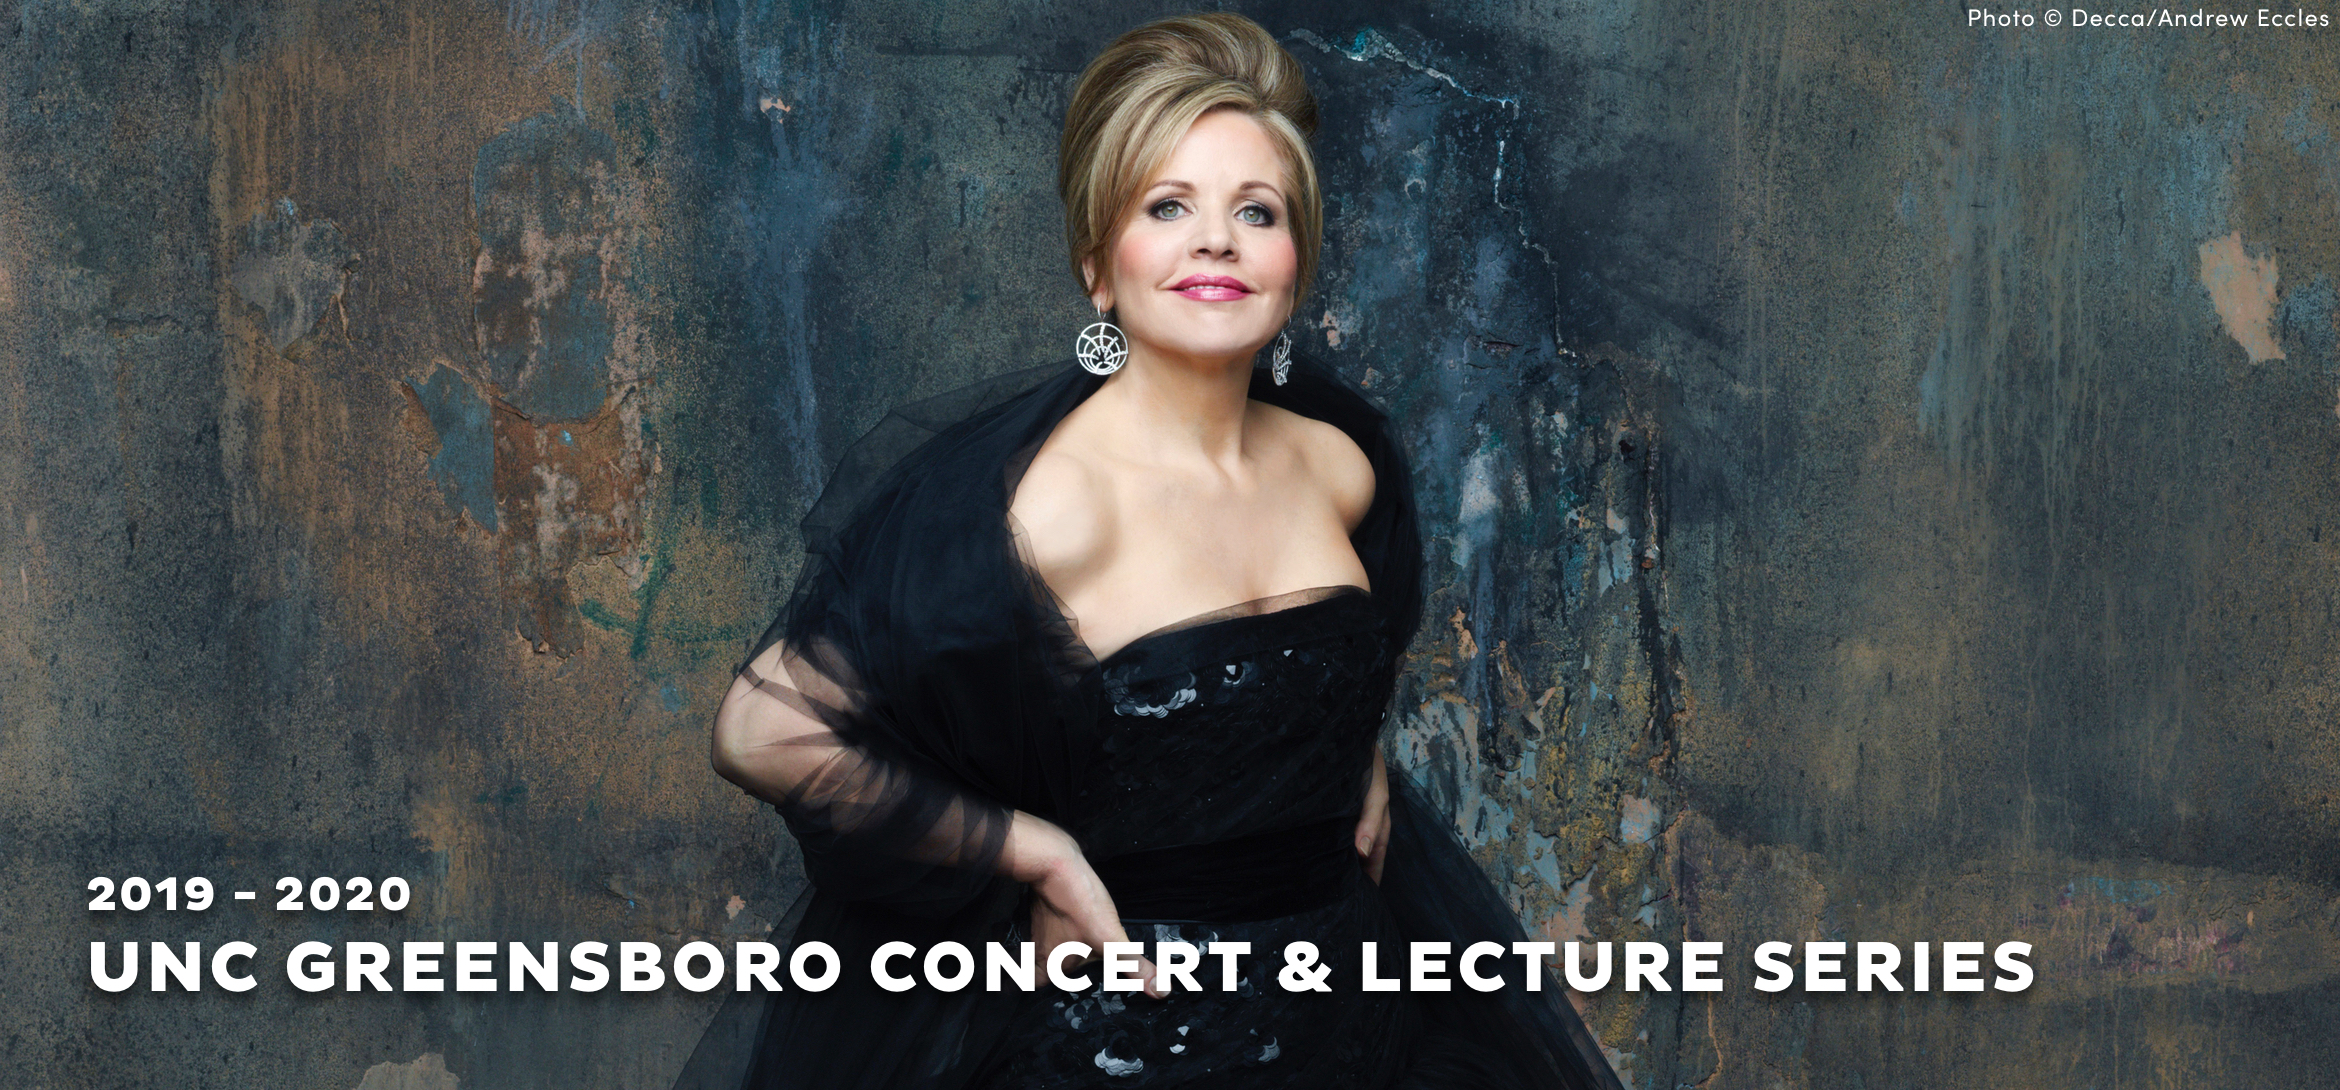 Uncg Spring 2020 Calendar University Concert Lecture Series 2019 2020 | College of Visual